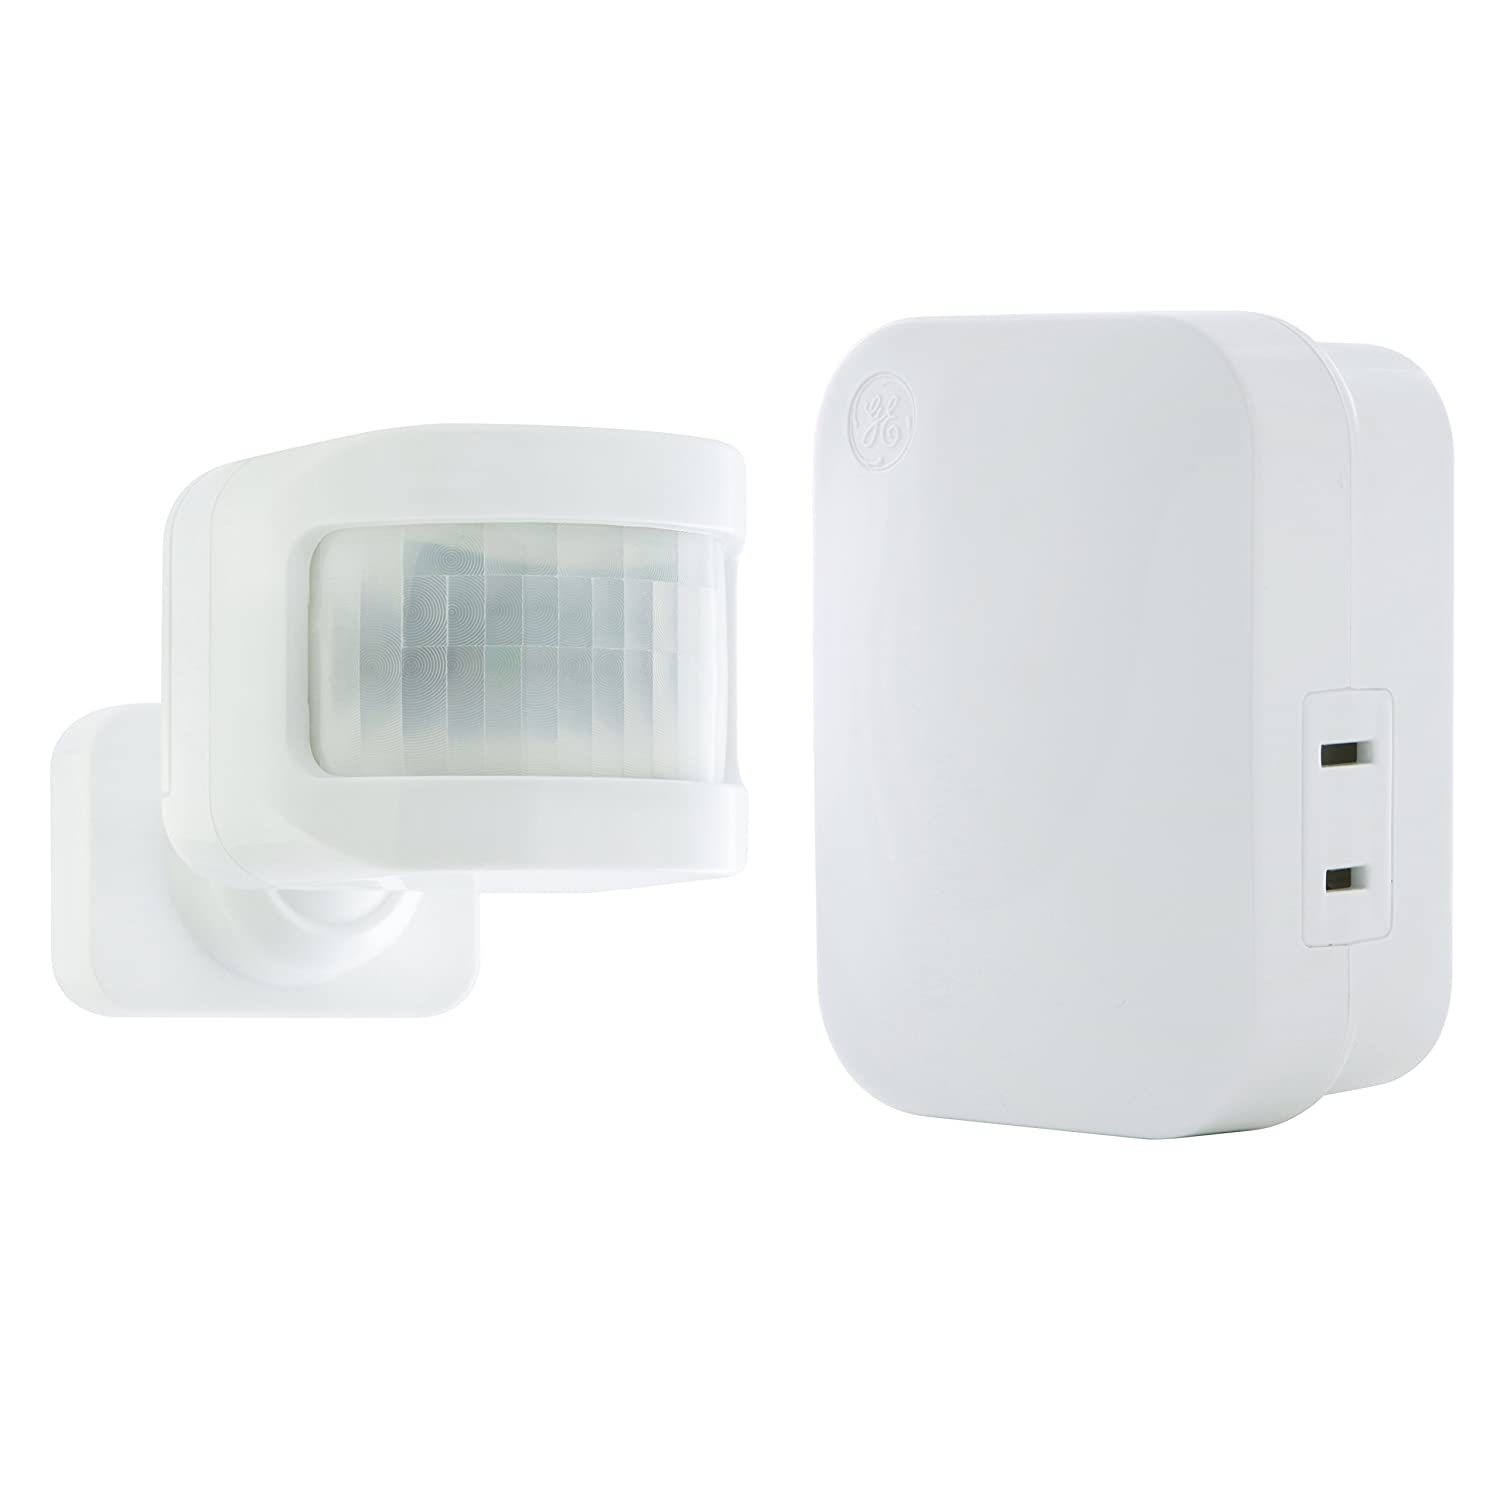 GE mySelectSmart Wireless Light Control Motion Sensor, On/Off, 1 Outlet, 150 ft. Range from Plug-In Receiver, Ideal for Lamps and Indoor Lighting, No Wiring Needed, Motion-Activated, Mountable, 36235